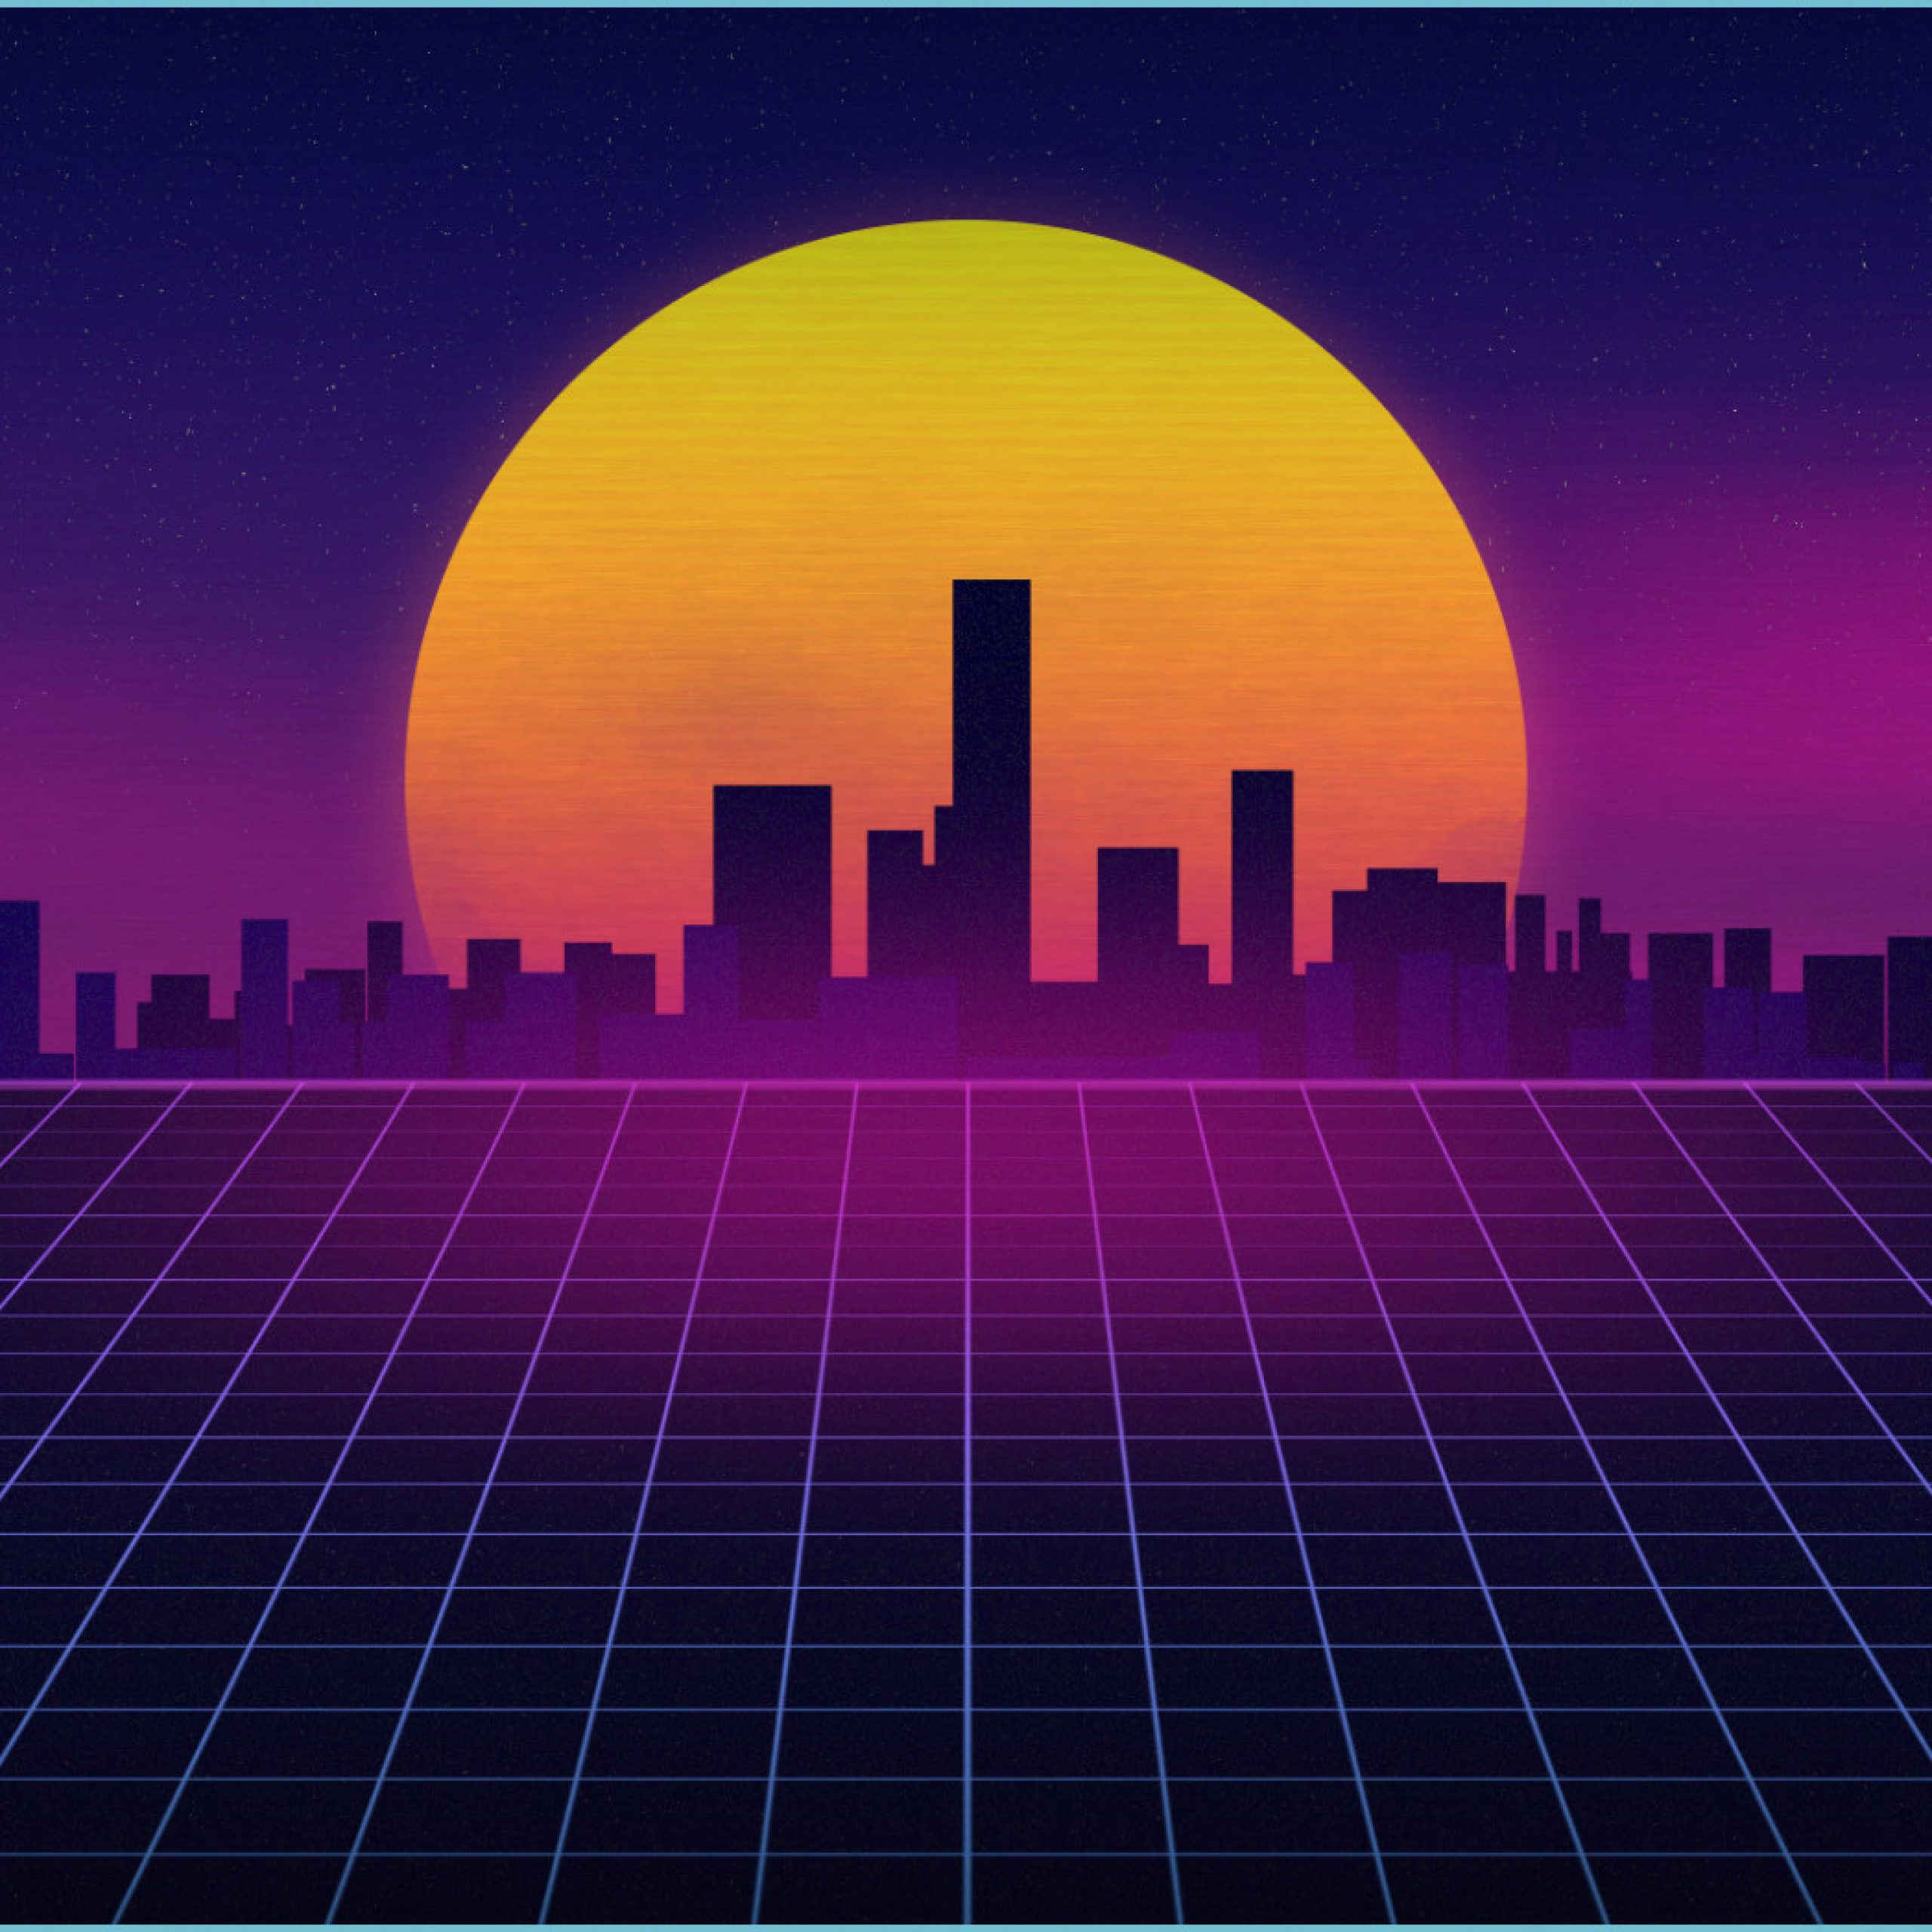 synthwave dual screen wallpaper by prostyle12 on deviantart dual monitor wallpaper